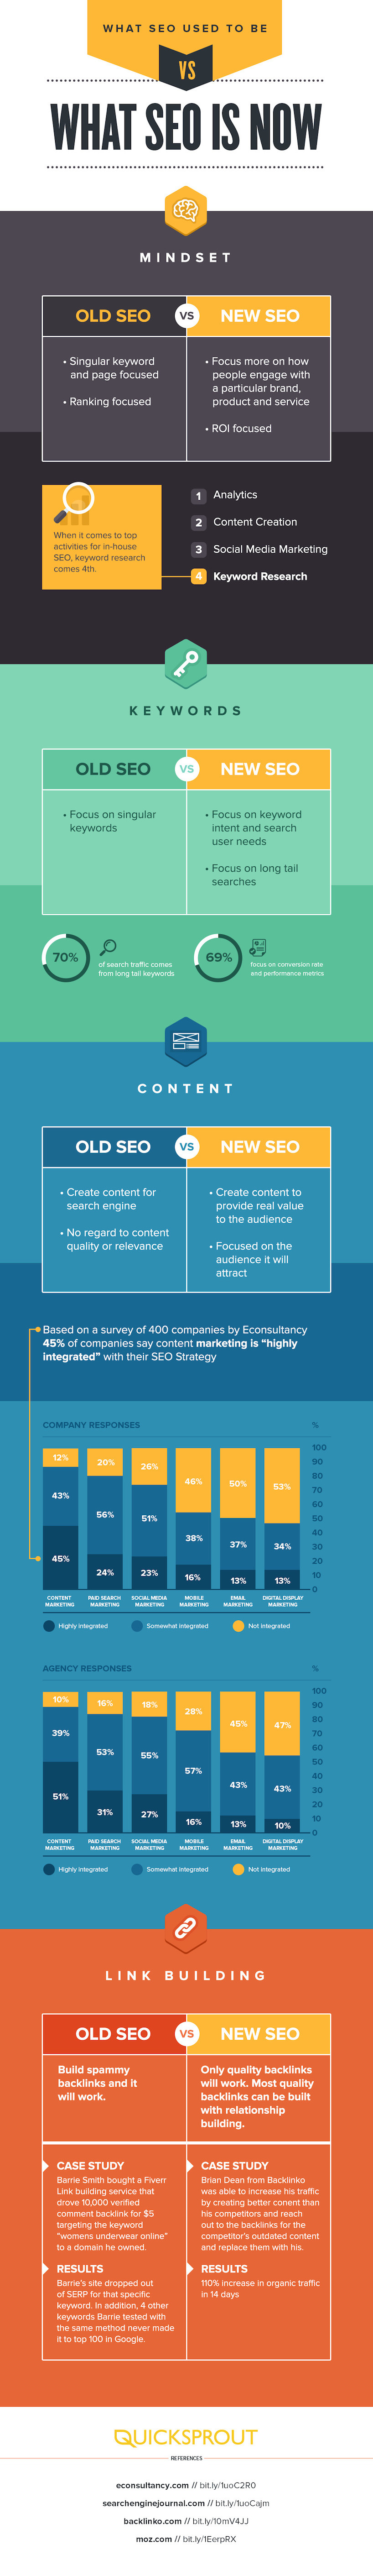 SEO done differently